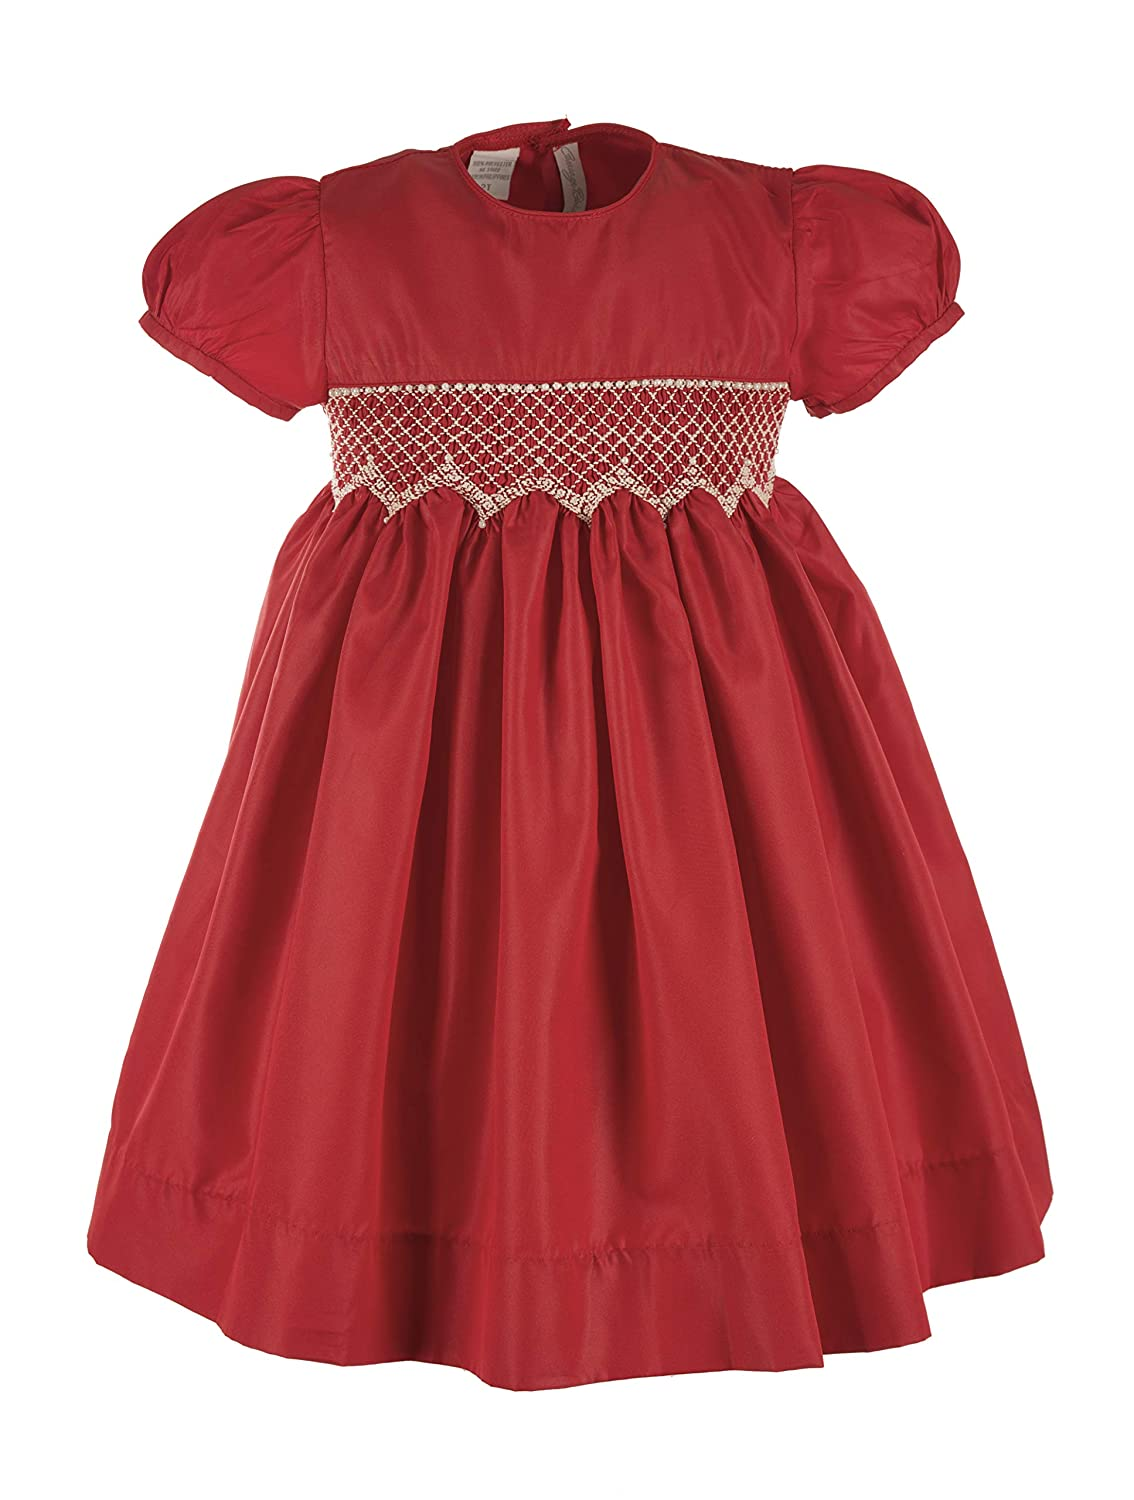 Kids 1950s Clothing & Costumes: Girls, Boys, Toddlers Carriage Boutique Girls Red Christmas Holiday Dress Hand Smocked $60.00 AT vintagedancer.com